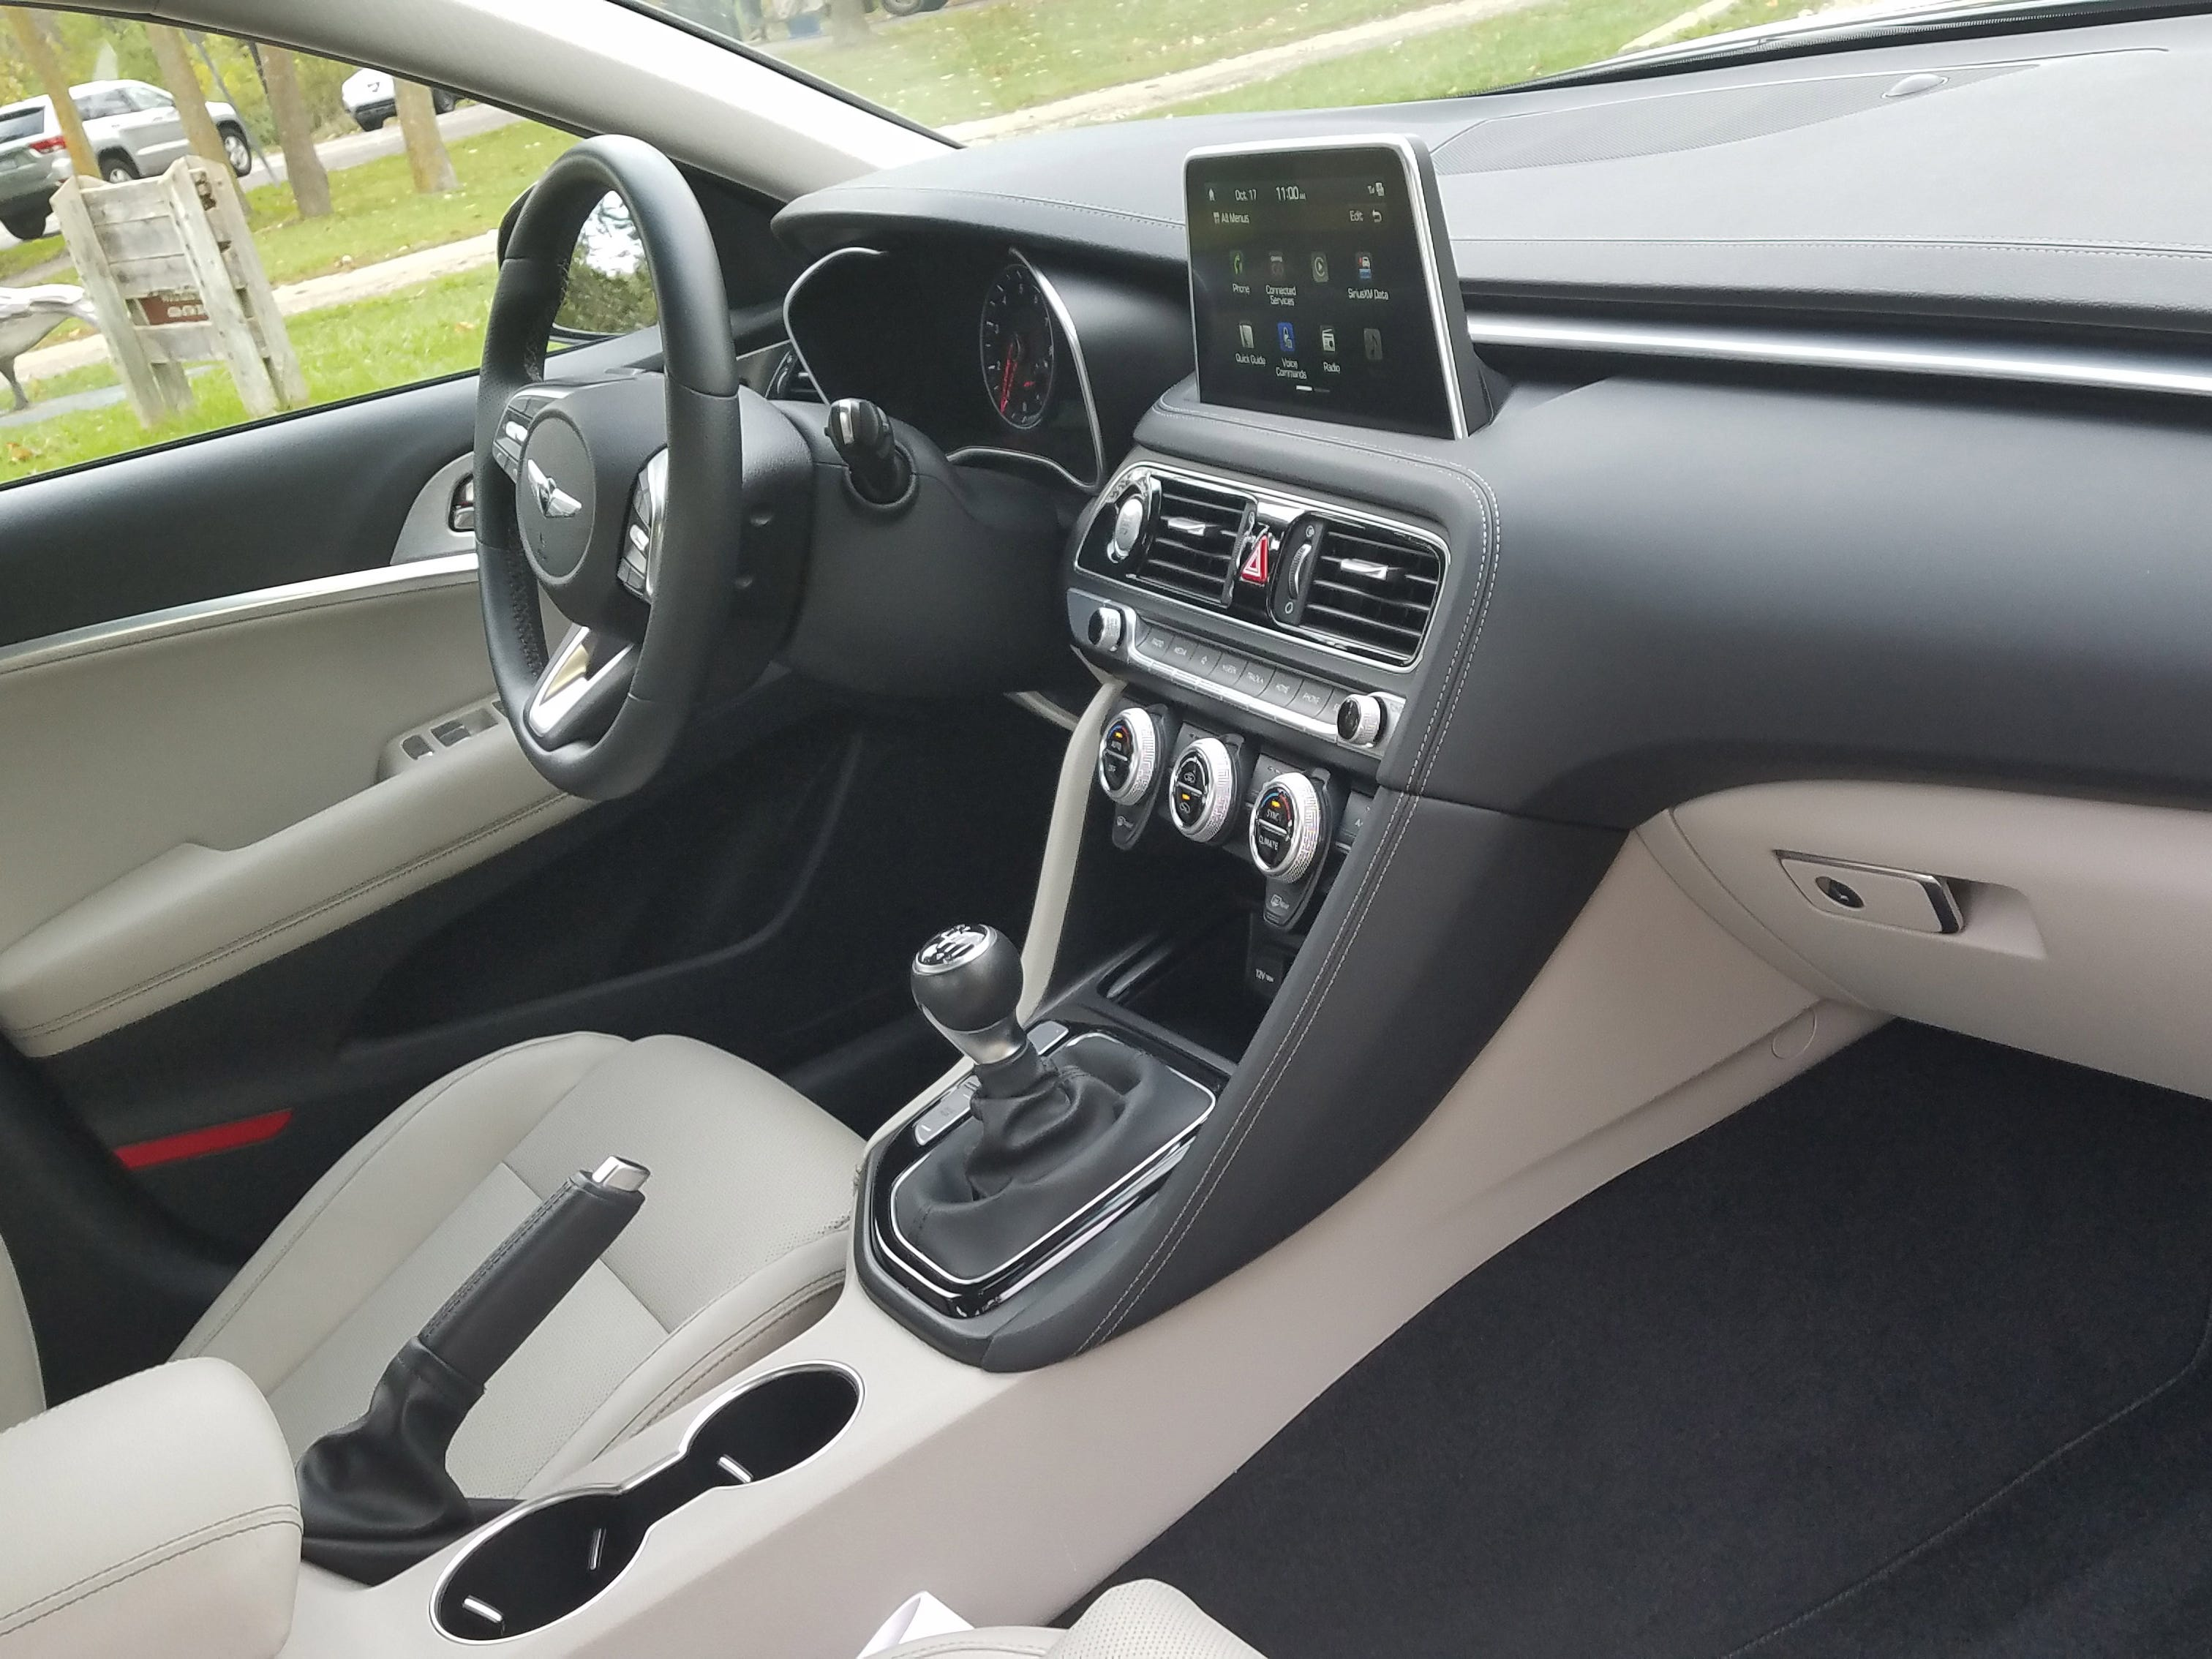 Hyundai and its premium Genesis brand have become synonymous with tasteful, Audi-like interiors. The high console touch screen aids driver visibility while the knobs make cabin operation intuitive.